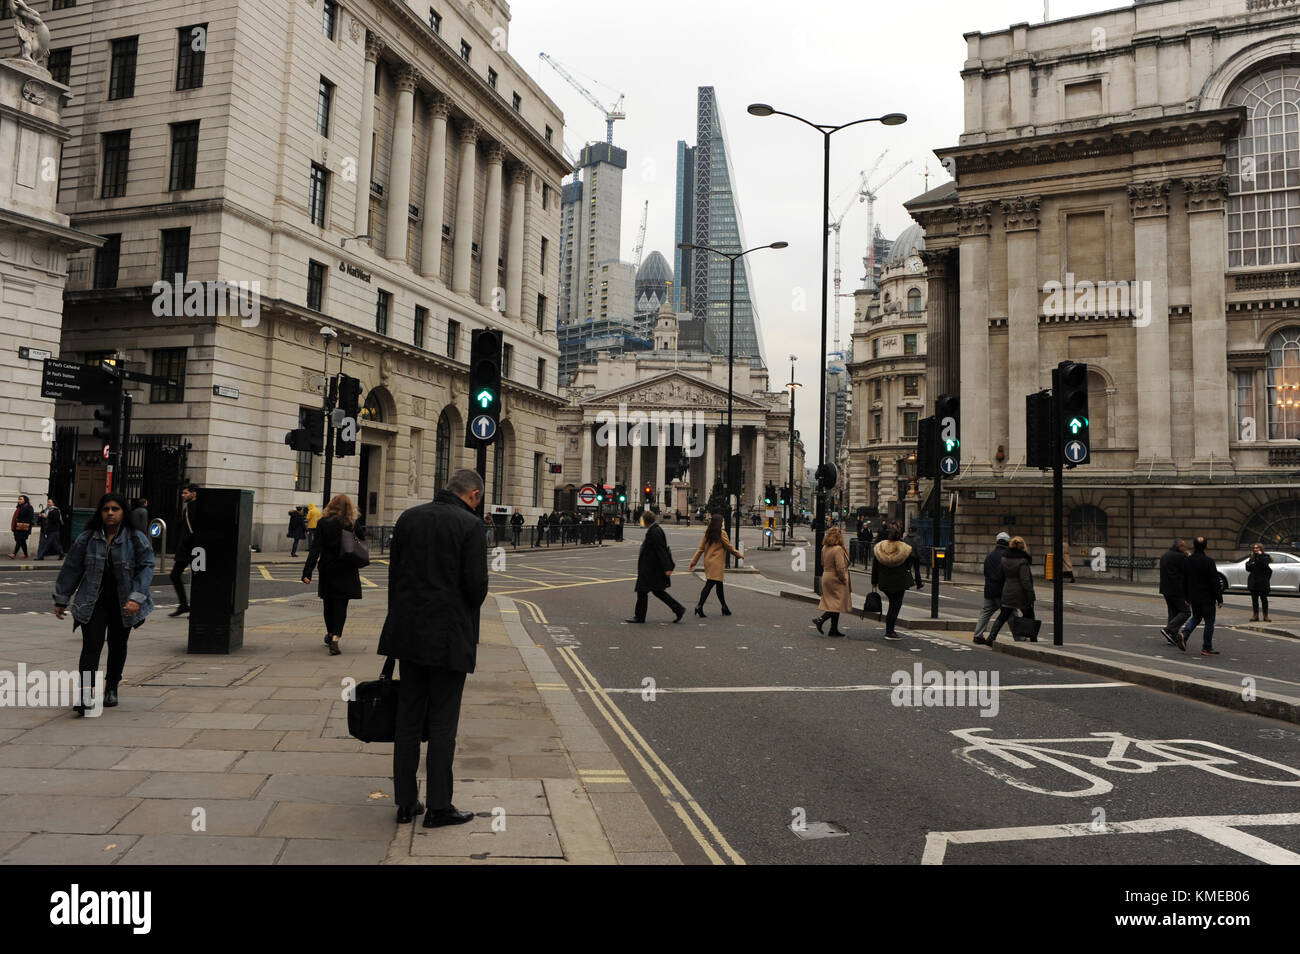 City workers cross the road on Queen Victoria Street in London, England Stock Photo